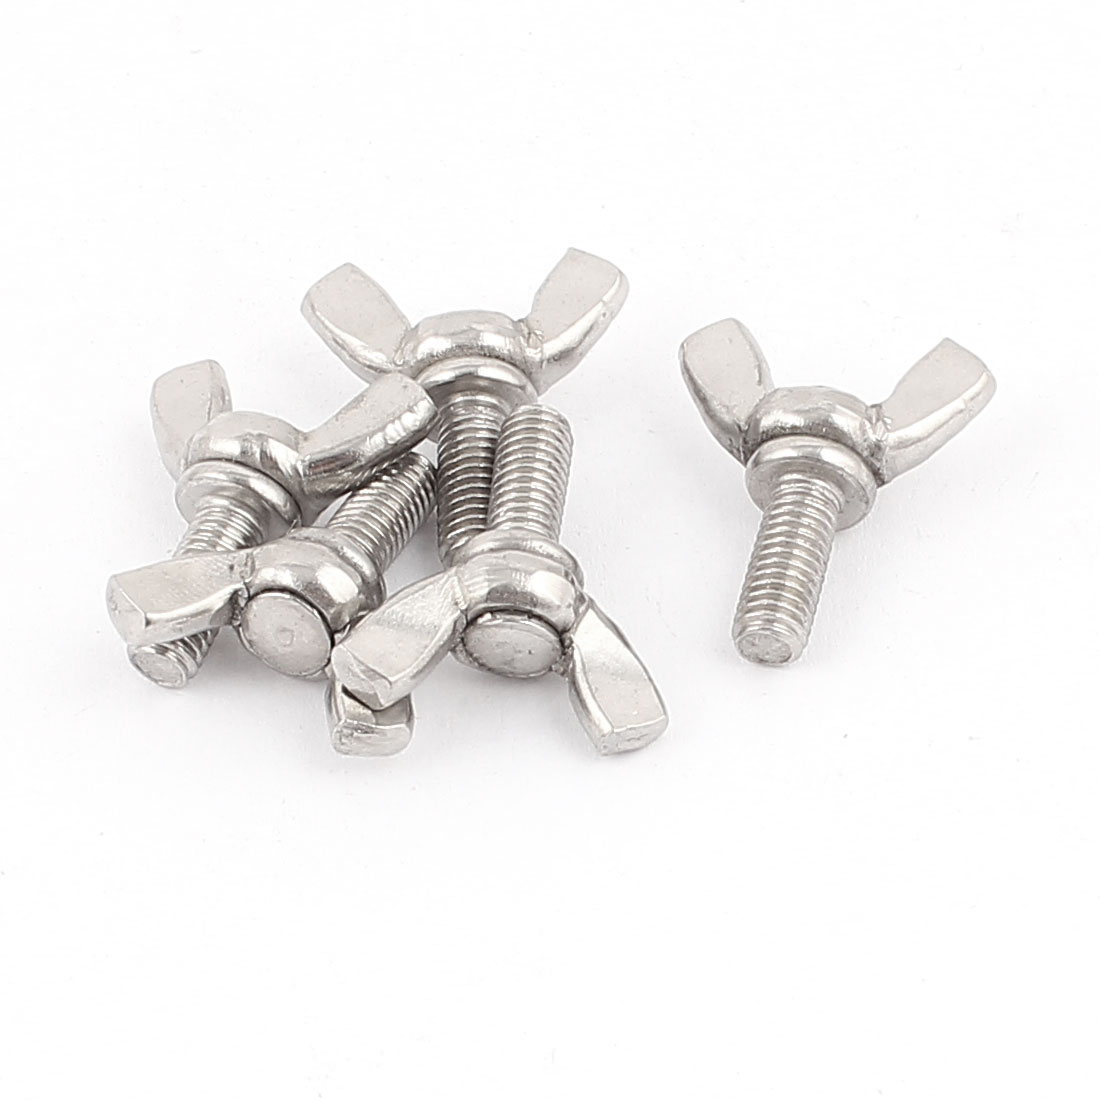 M5x12mm 304 Stainless Steel Wing Screw Bolts Hardware Parts 5pcs